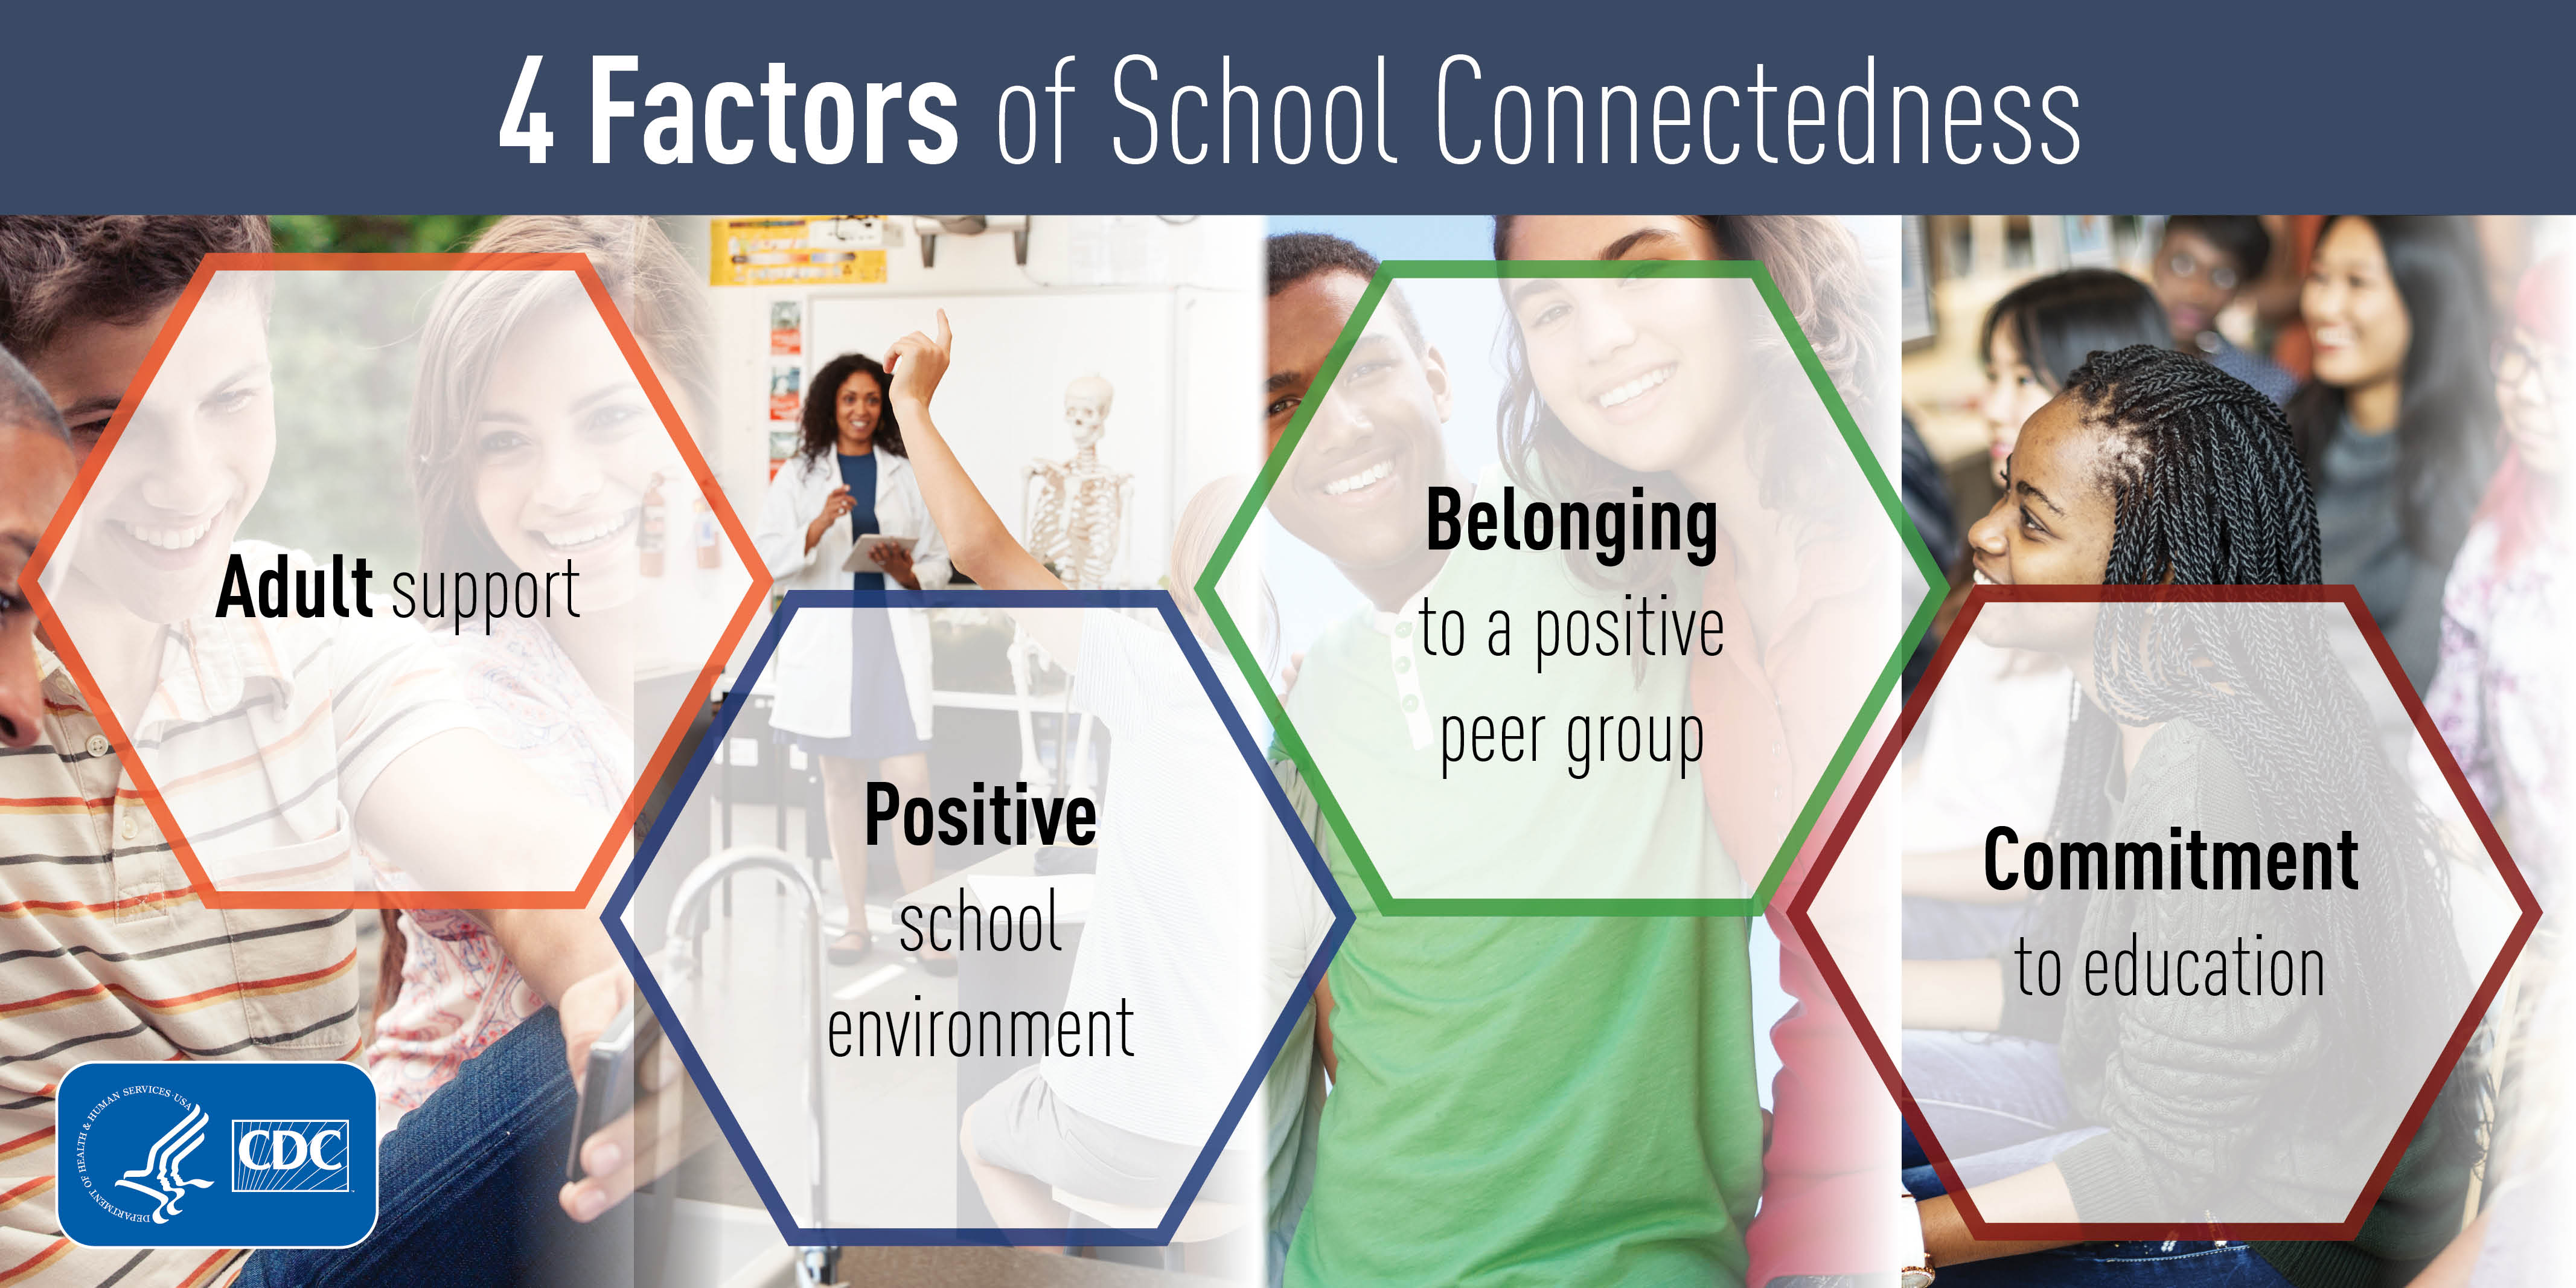 4 factors of school connectedness: adult support; positive school environment; belonging to a positive peer group; commitment to education